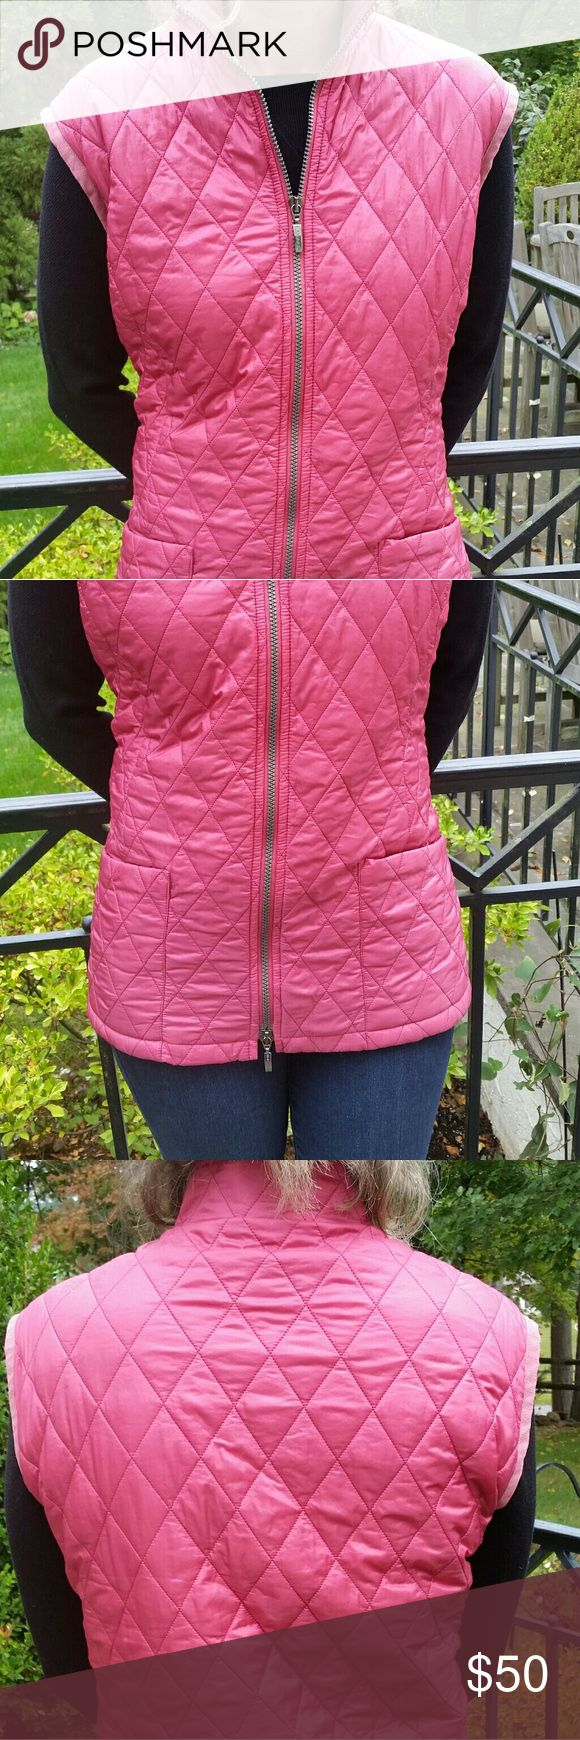 PLUS SIZE Barbour Quilted Vest Beautiful rose color. Size 14/16. Some wear on leather border on armholes and slight fading on collar. Barbour Jackets & Coats Vests